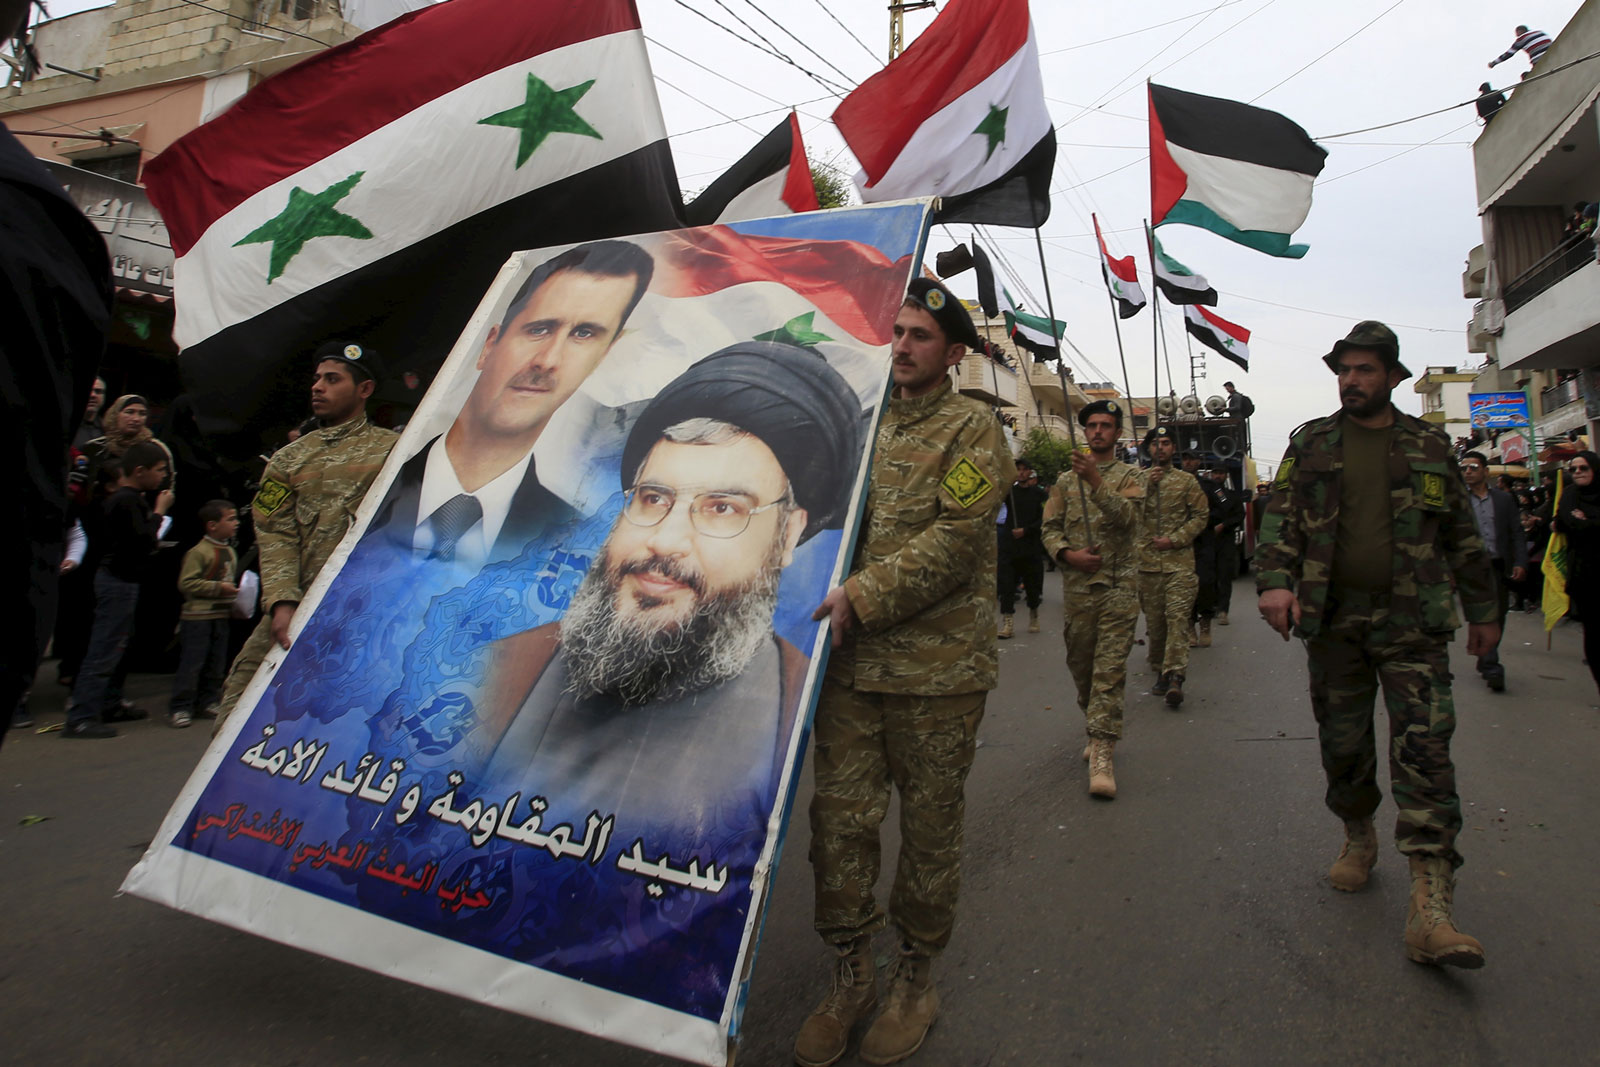 Members of the Arab Socialist Baath Party carry a picture depicting Syria's President Bashar al-Assad and Hezbollah leader Sayyed Hassan Nasrallah, Ansar village, Lebanon, March 2, 2016